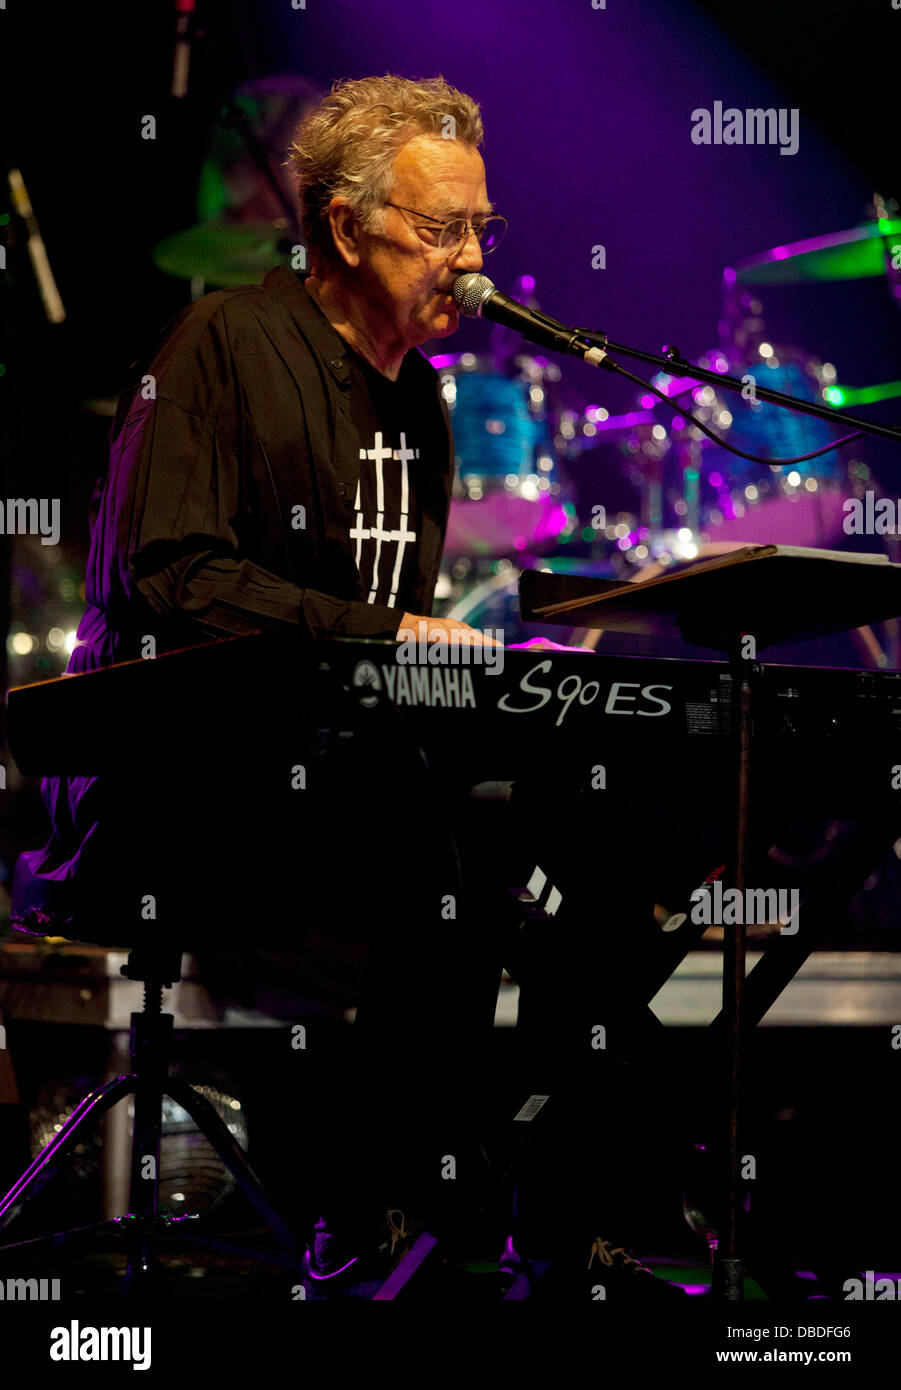 Ray Manzarek Former keyboardist for The Doors Ray Manzarek and Legendary blues guitarist Roy Rodgers perform on their Translucent Blues Tour at The Highline ...  sc 1 st  Alamy & Ray Manzarek Former keyboardist for The Doors Ray Manzarek and Stock ...